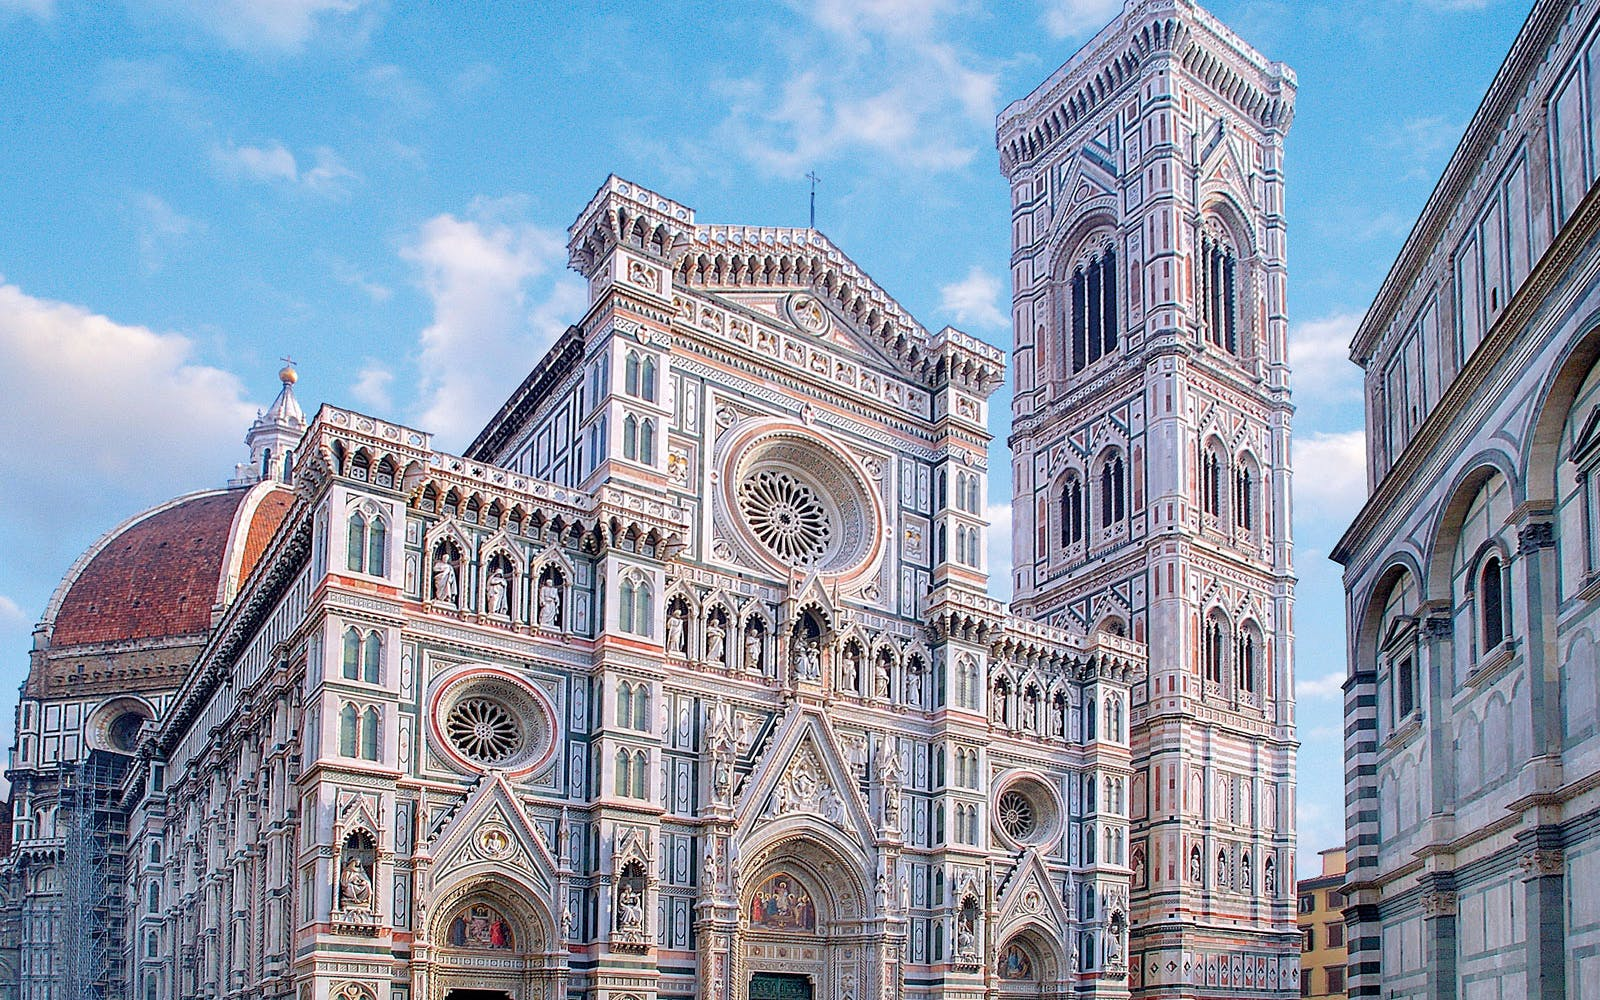 florence duomo and academia gallery guided tour-3